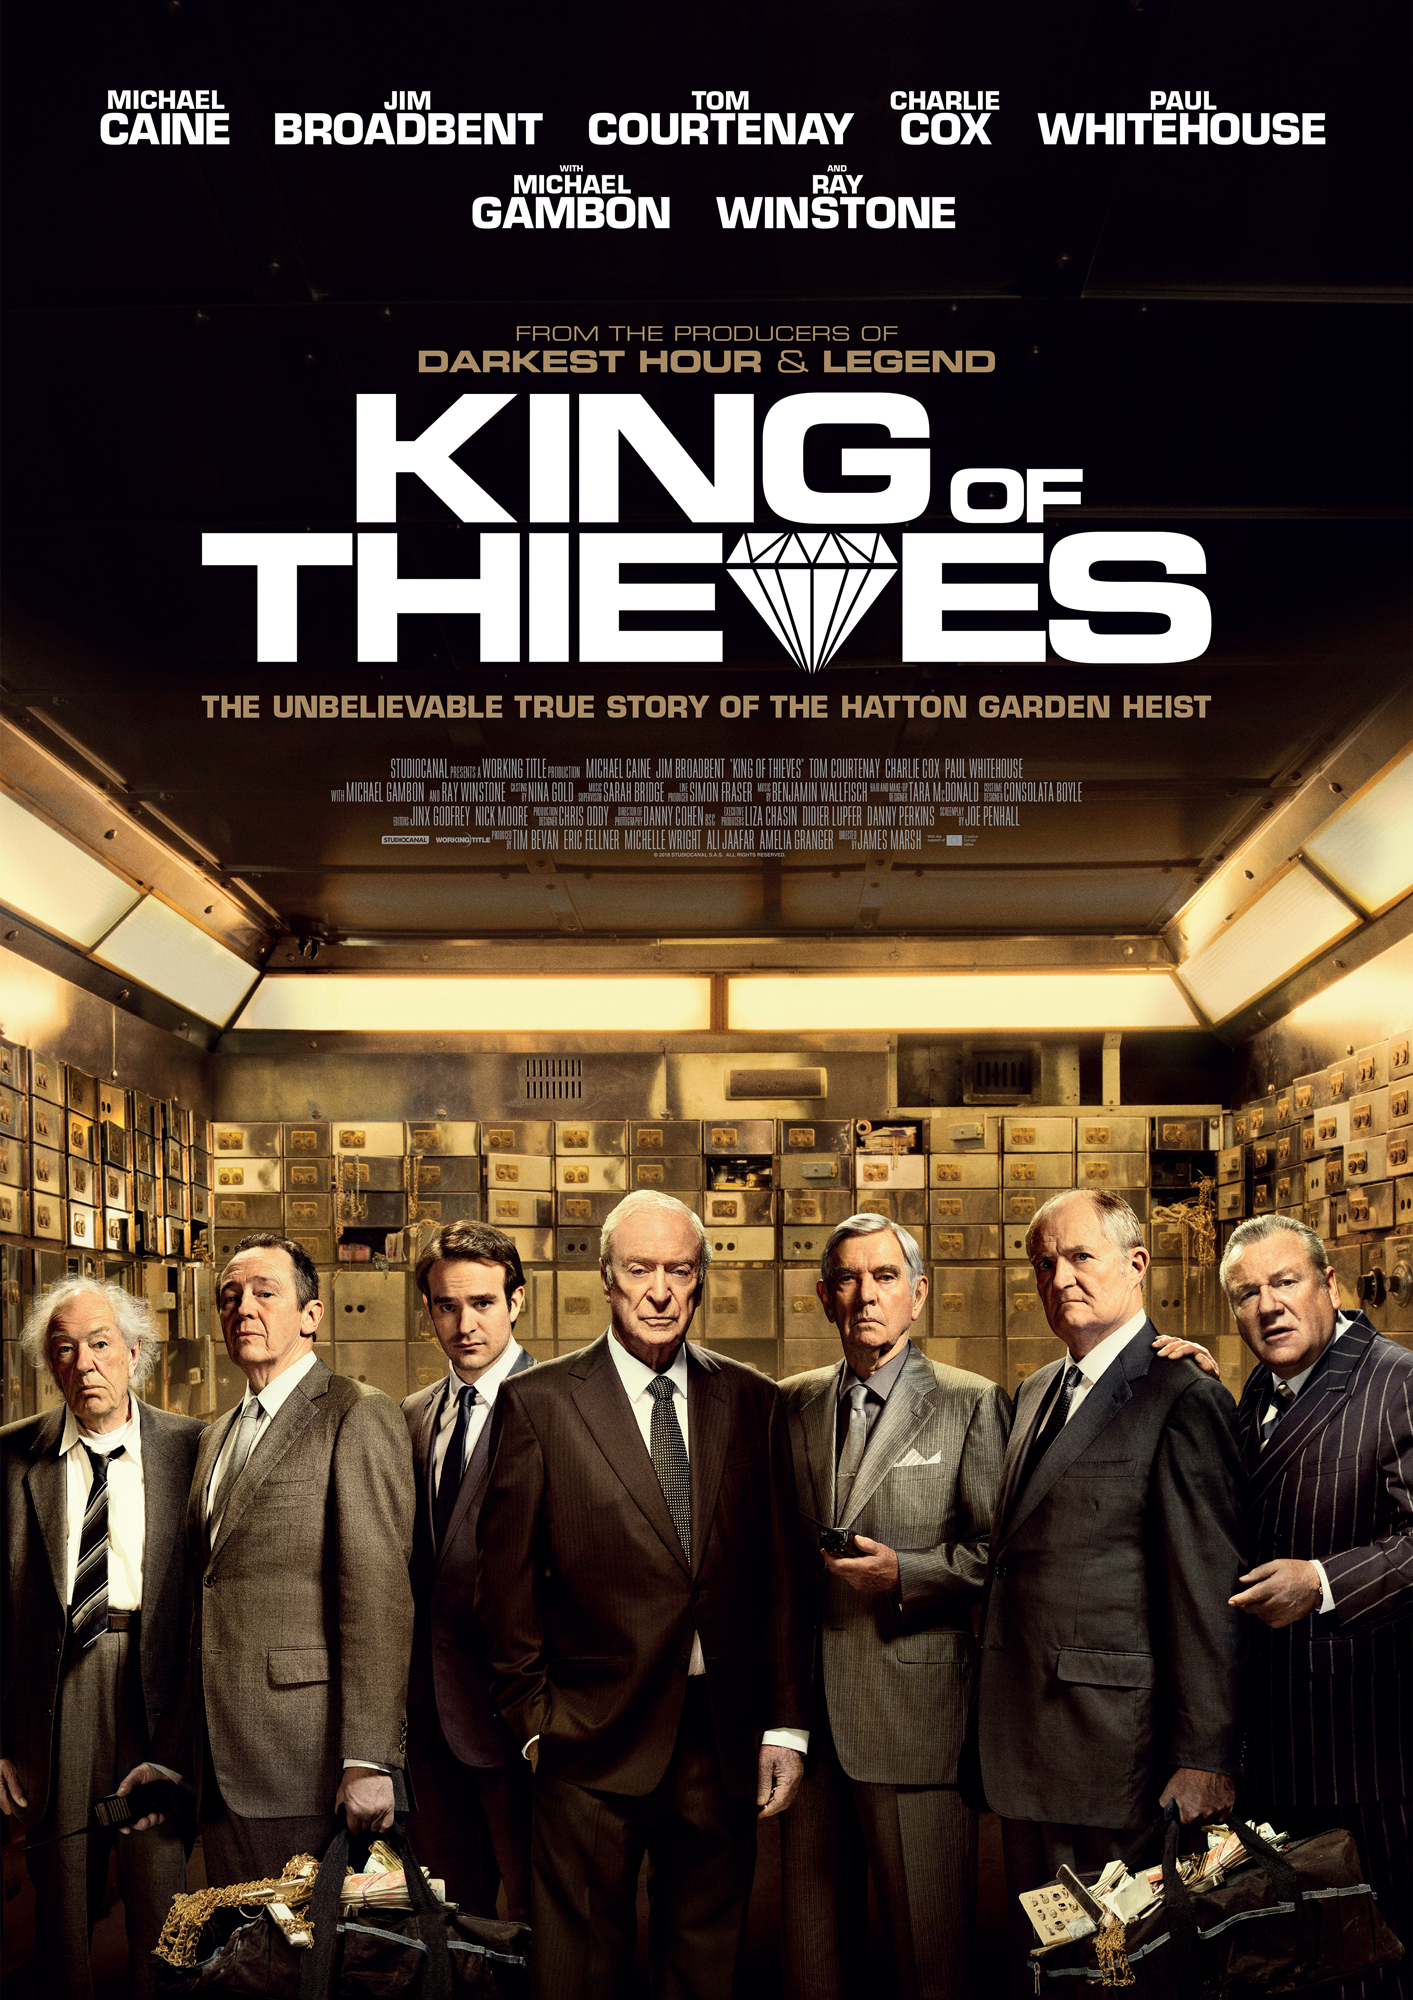 King of Thieves kapak